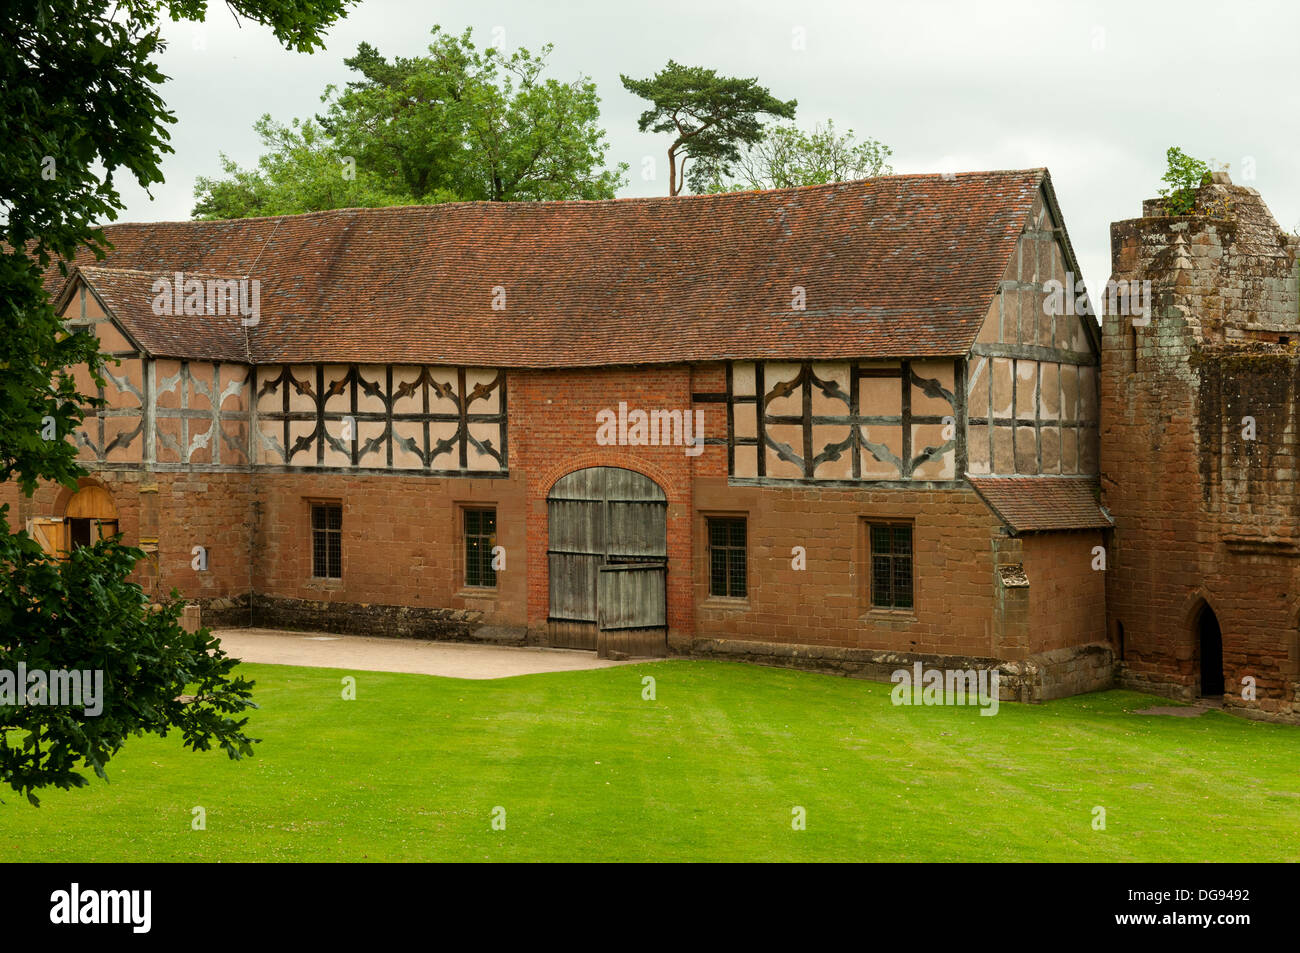 The Stables, Kenilworth Castle, Kenilworth, Warwickshire, England - Stock Image